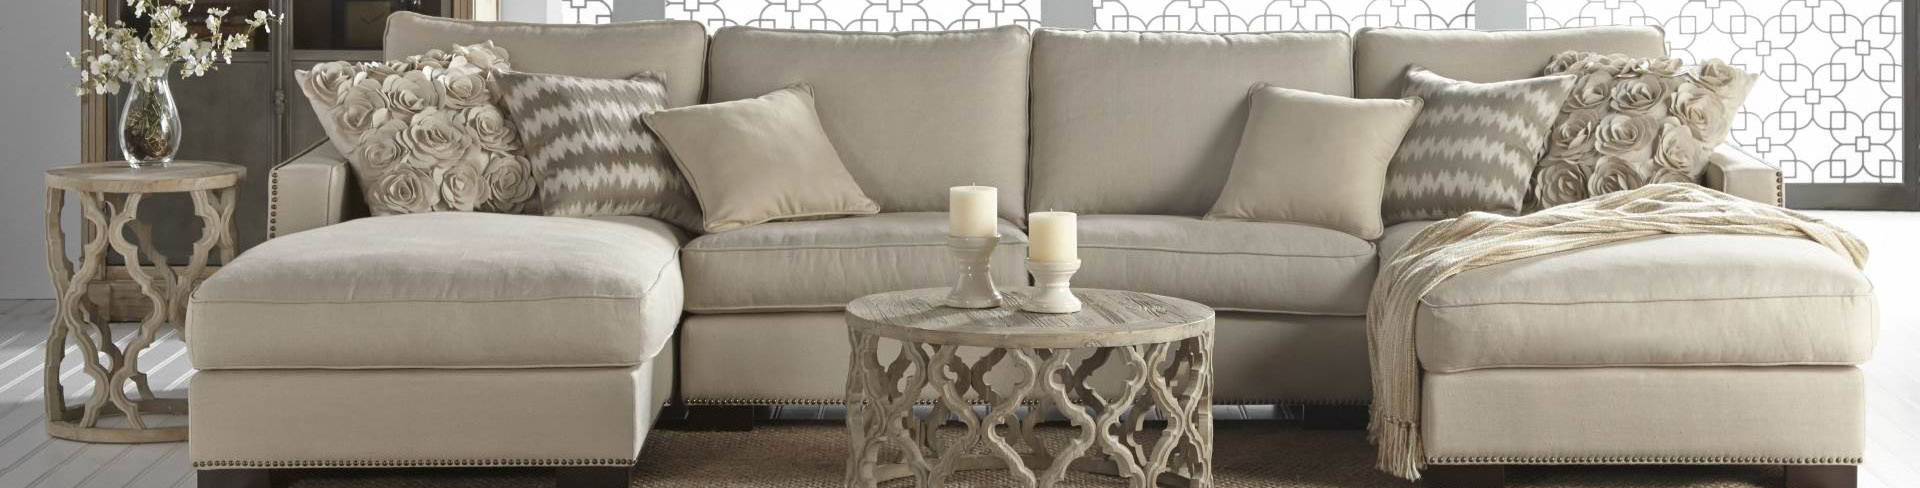 Inside Out St Lucia Home Furnishing And Decor With A Difference Inside Out Offers